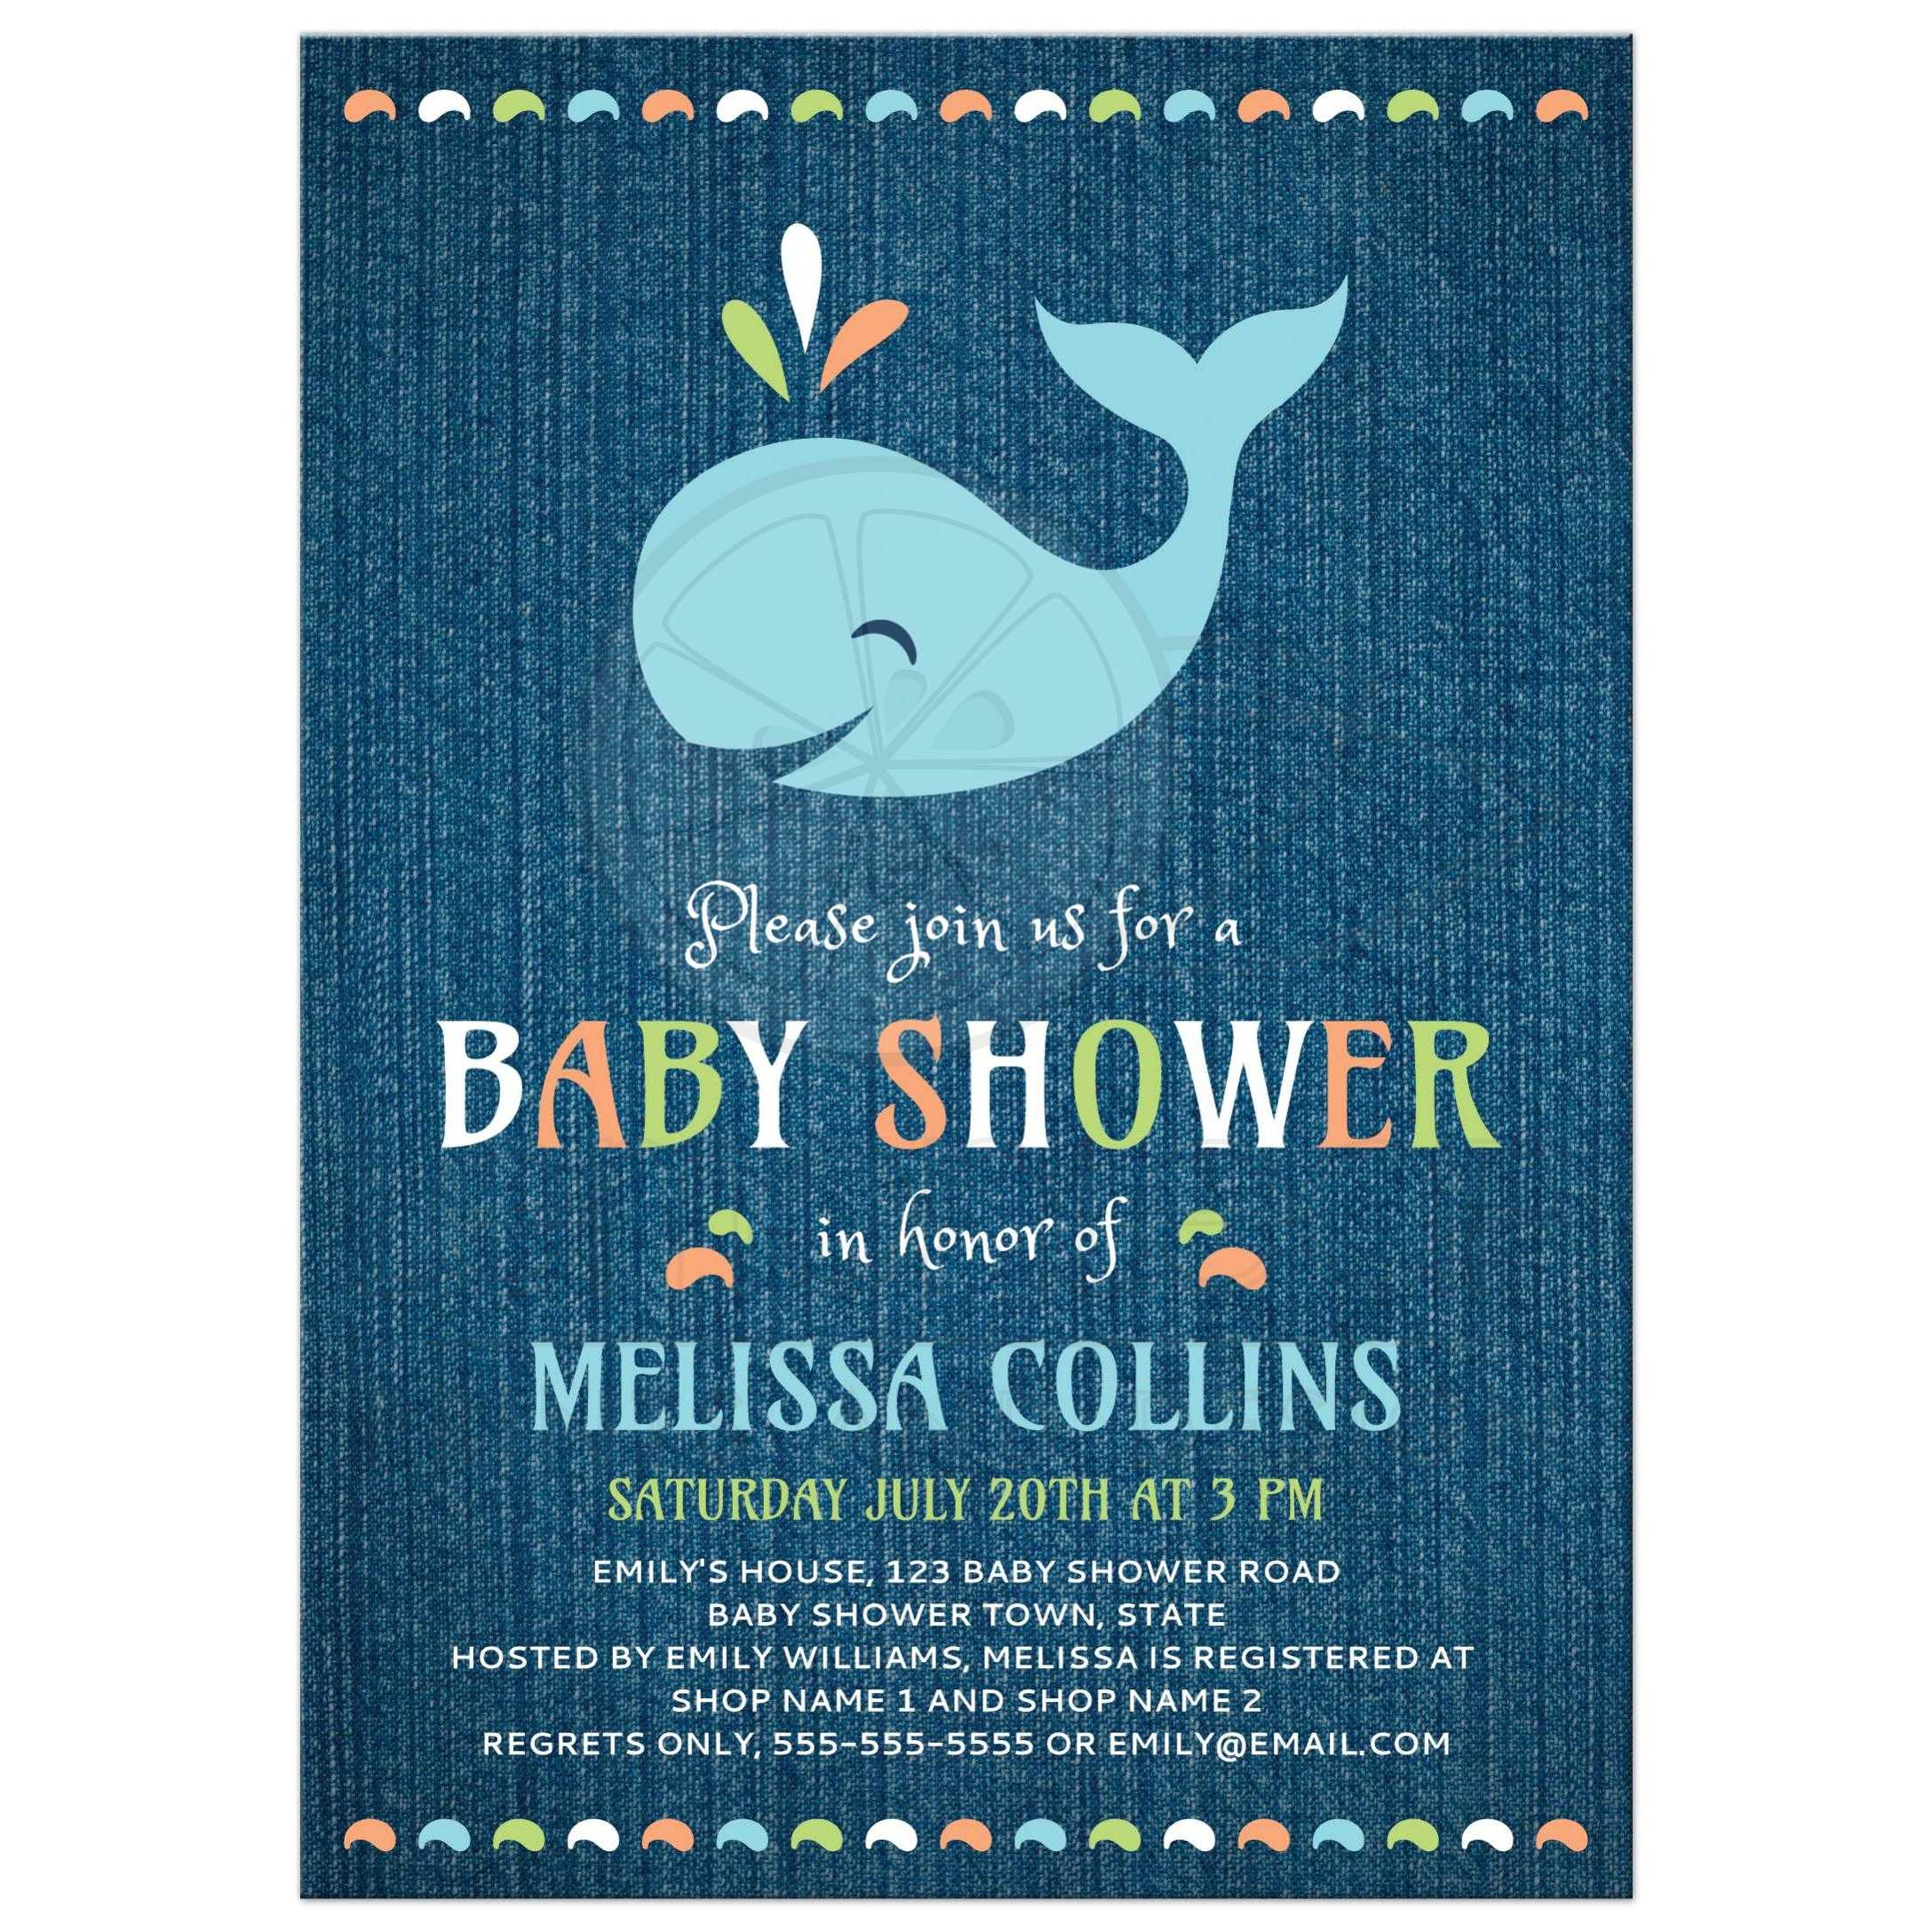 Whale on blue denim, cute baby shower invitation | Under the sea theme